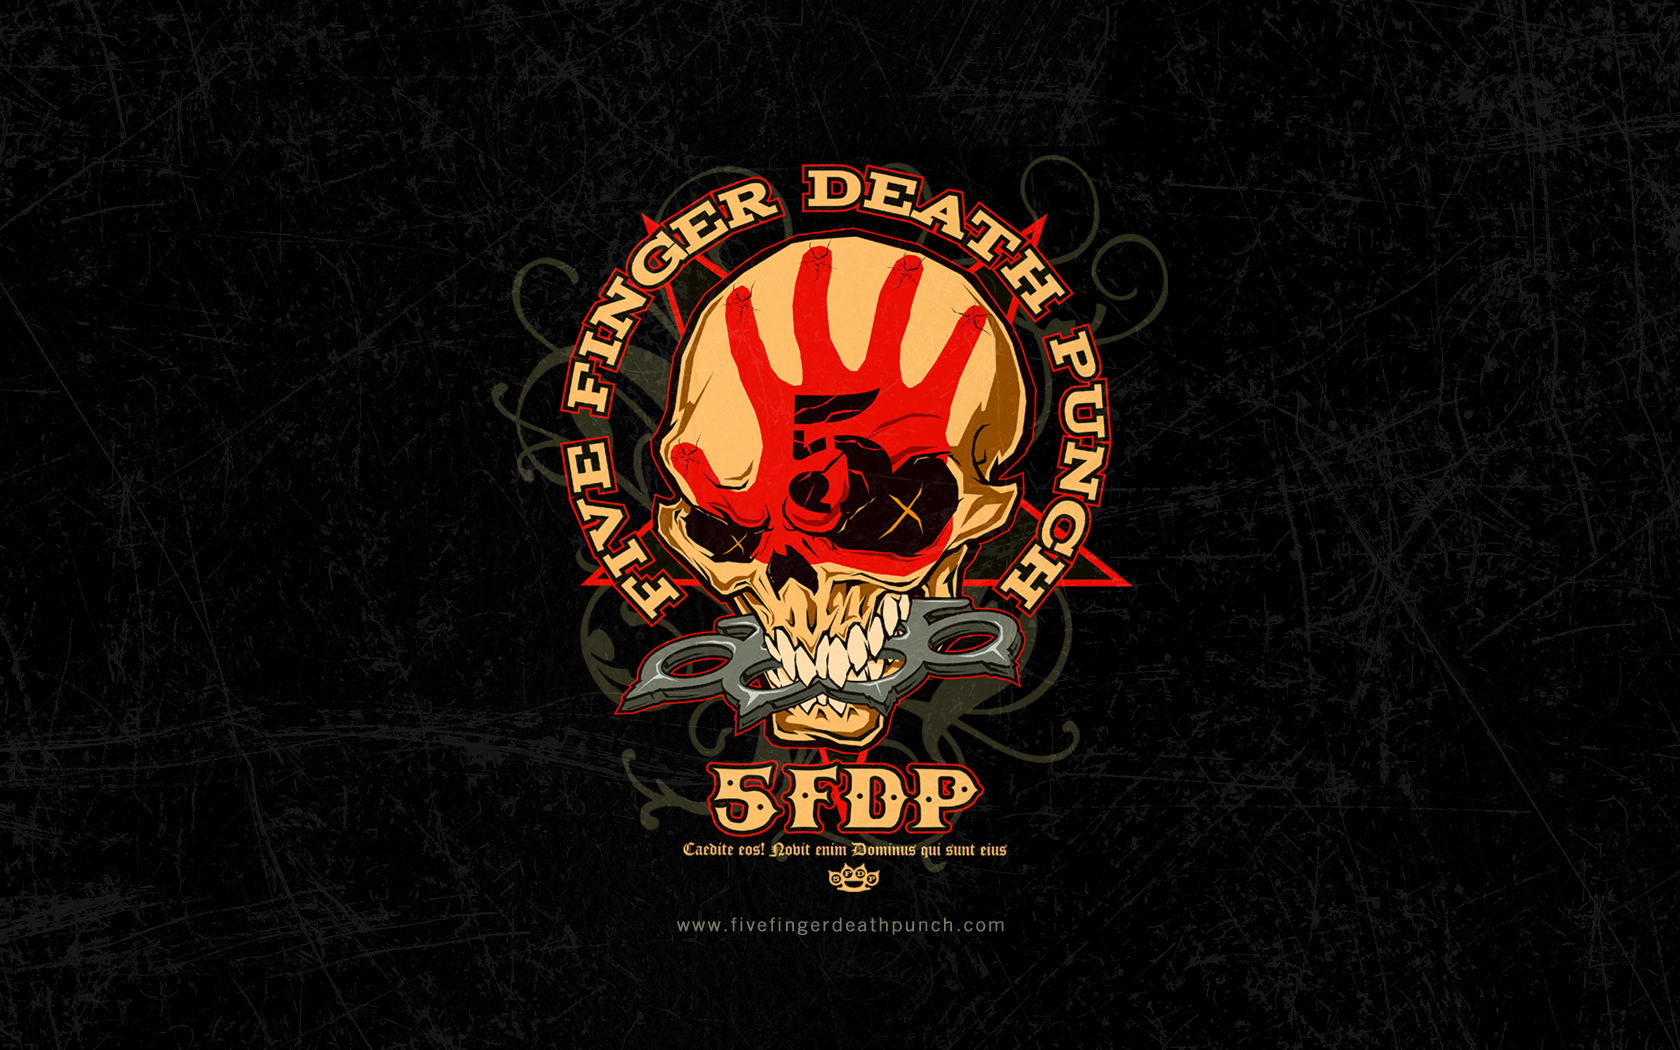 Five Finger Death Punch Wallpaper 377161 Hd Wallpaper